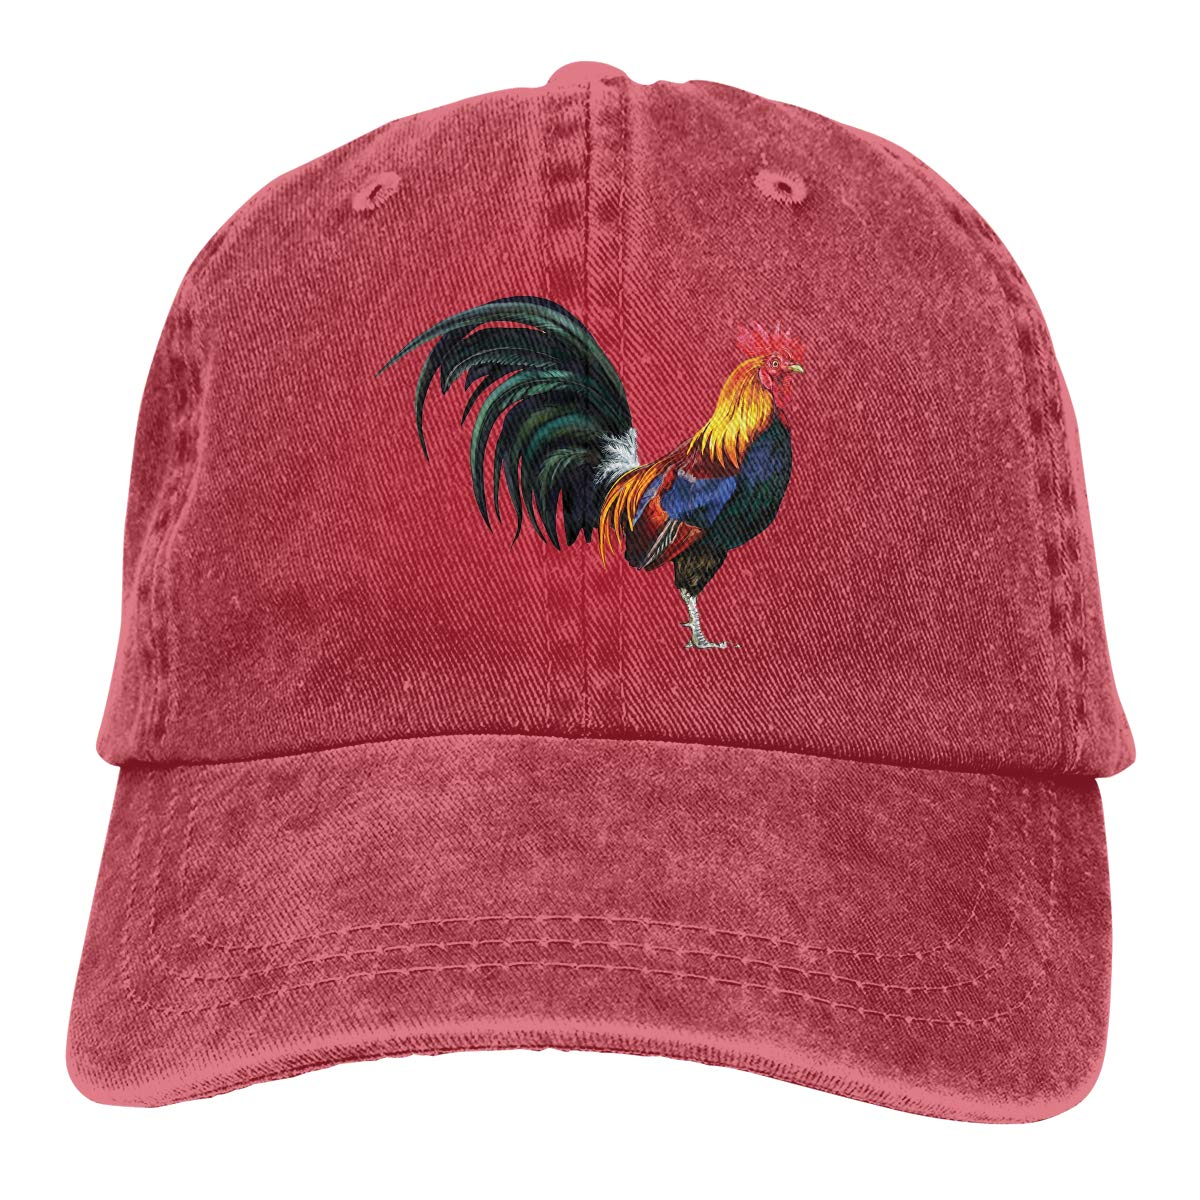 Adult Unisex Jeans Cap Adjustable Hat Rooster Vintage Cotton Denim